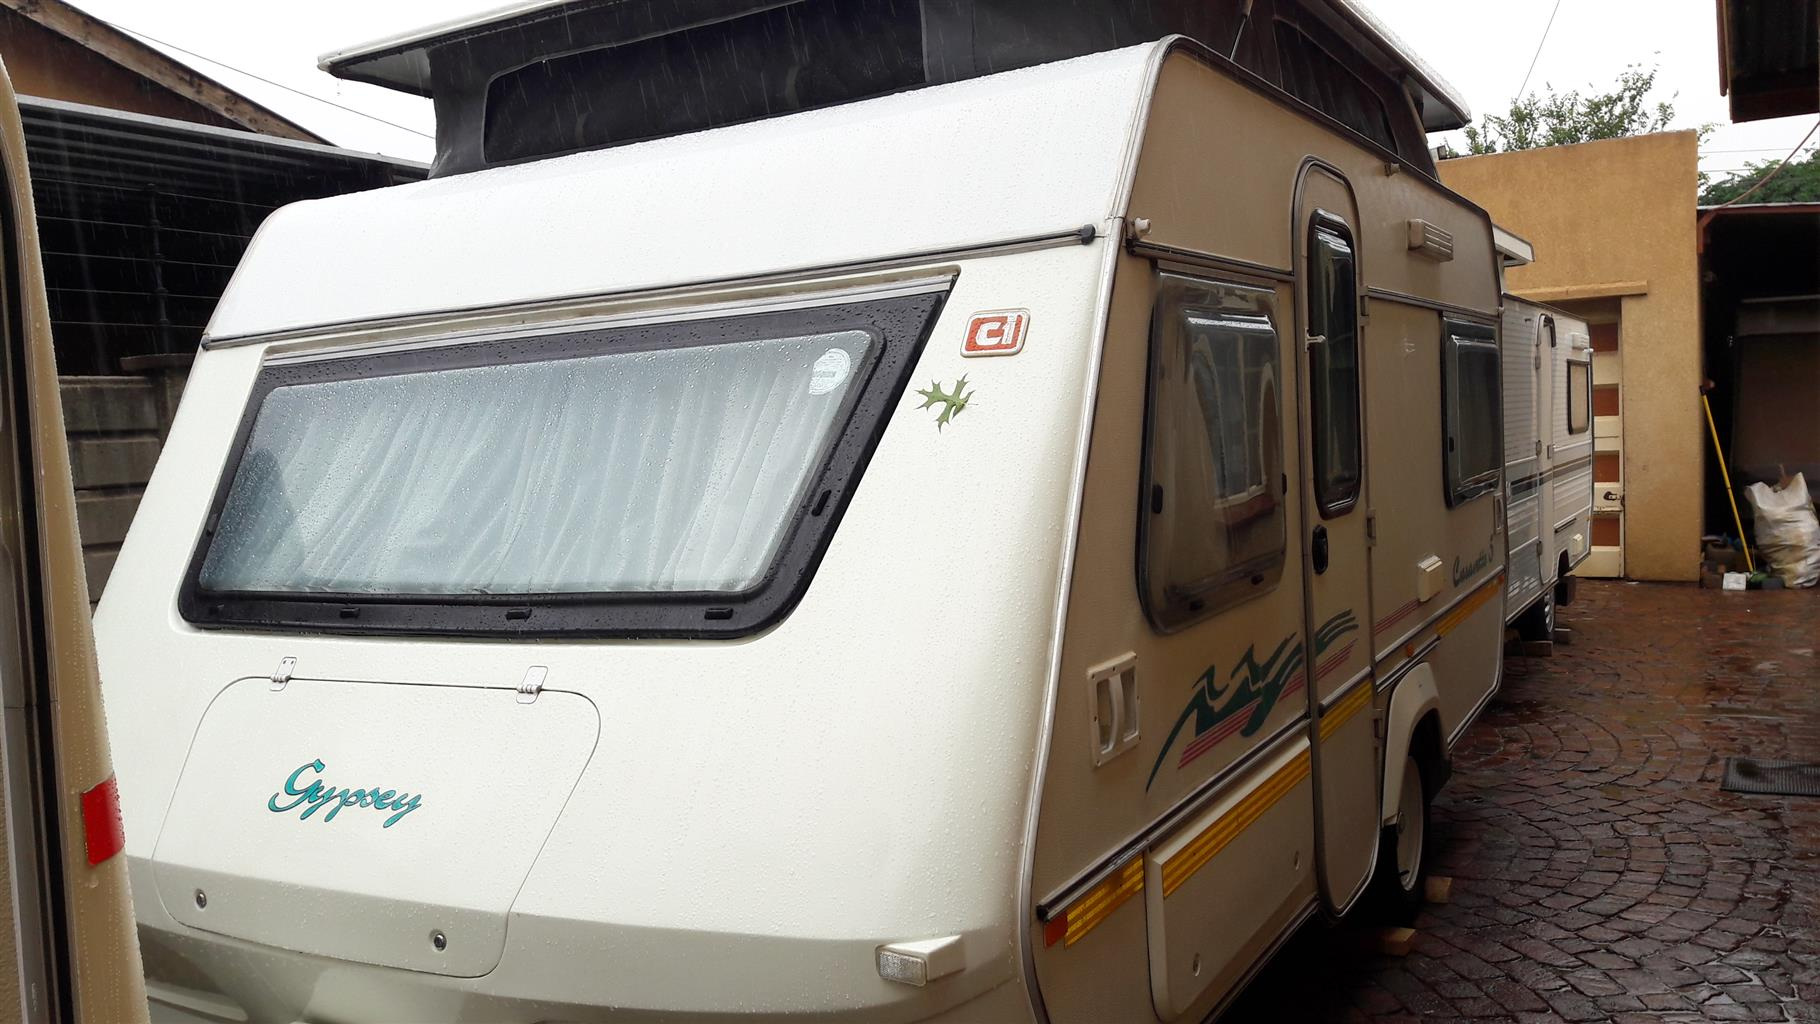 GYPSEY CARAVETTE 5 1995 MODEL IN VEREENIGING WITH FULL TENT AND RALLY TENT